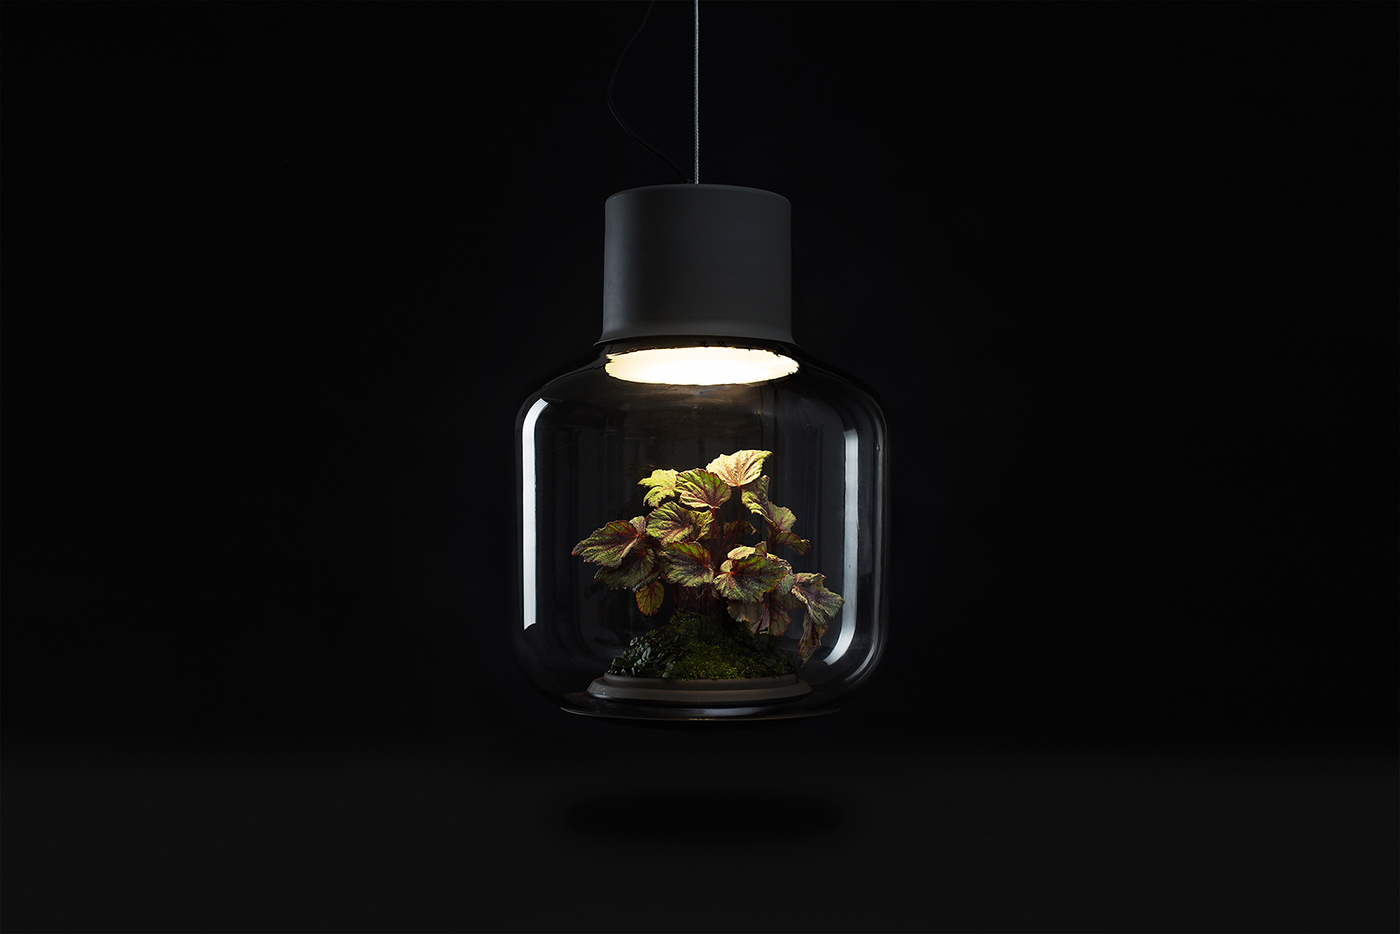 mygdal_lamp_05